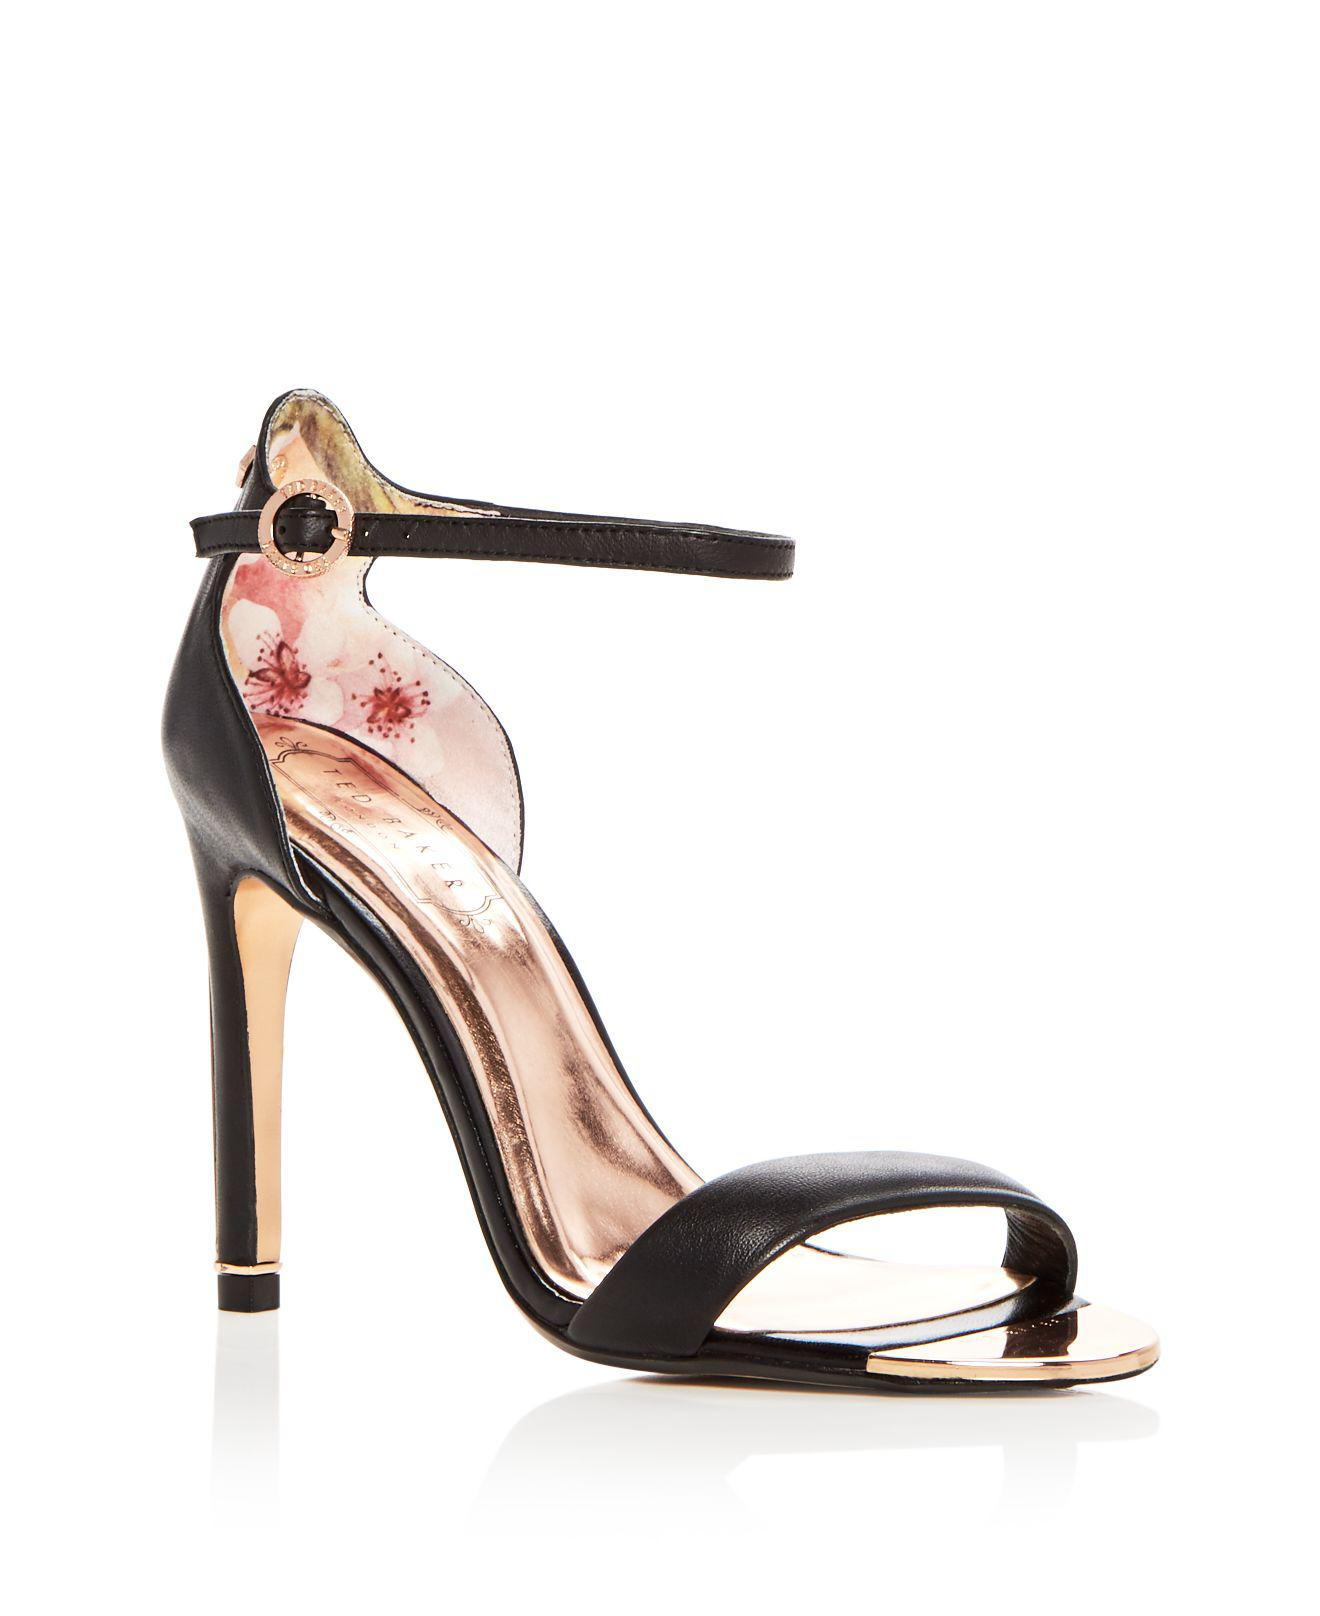 Ted Baker Women's Sharlot Ankle Strap Sandals Footlocker Finishline Online Outlet Amazing Price Cost Online 7WjfWLLi5g